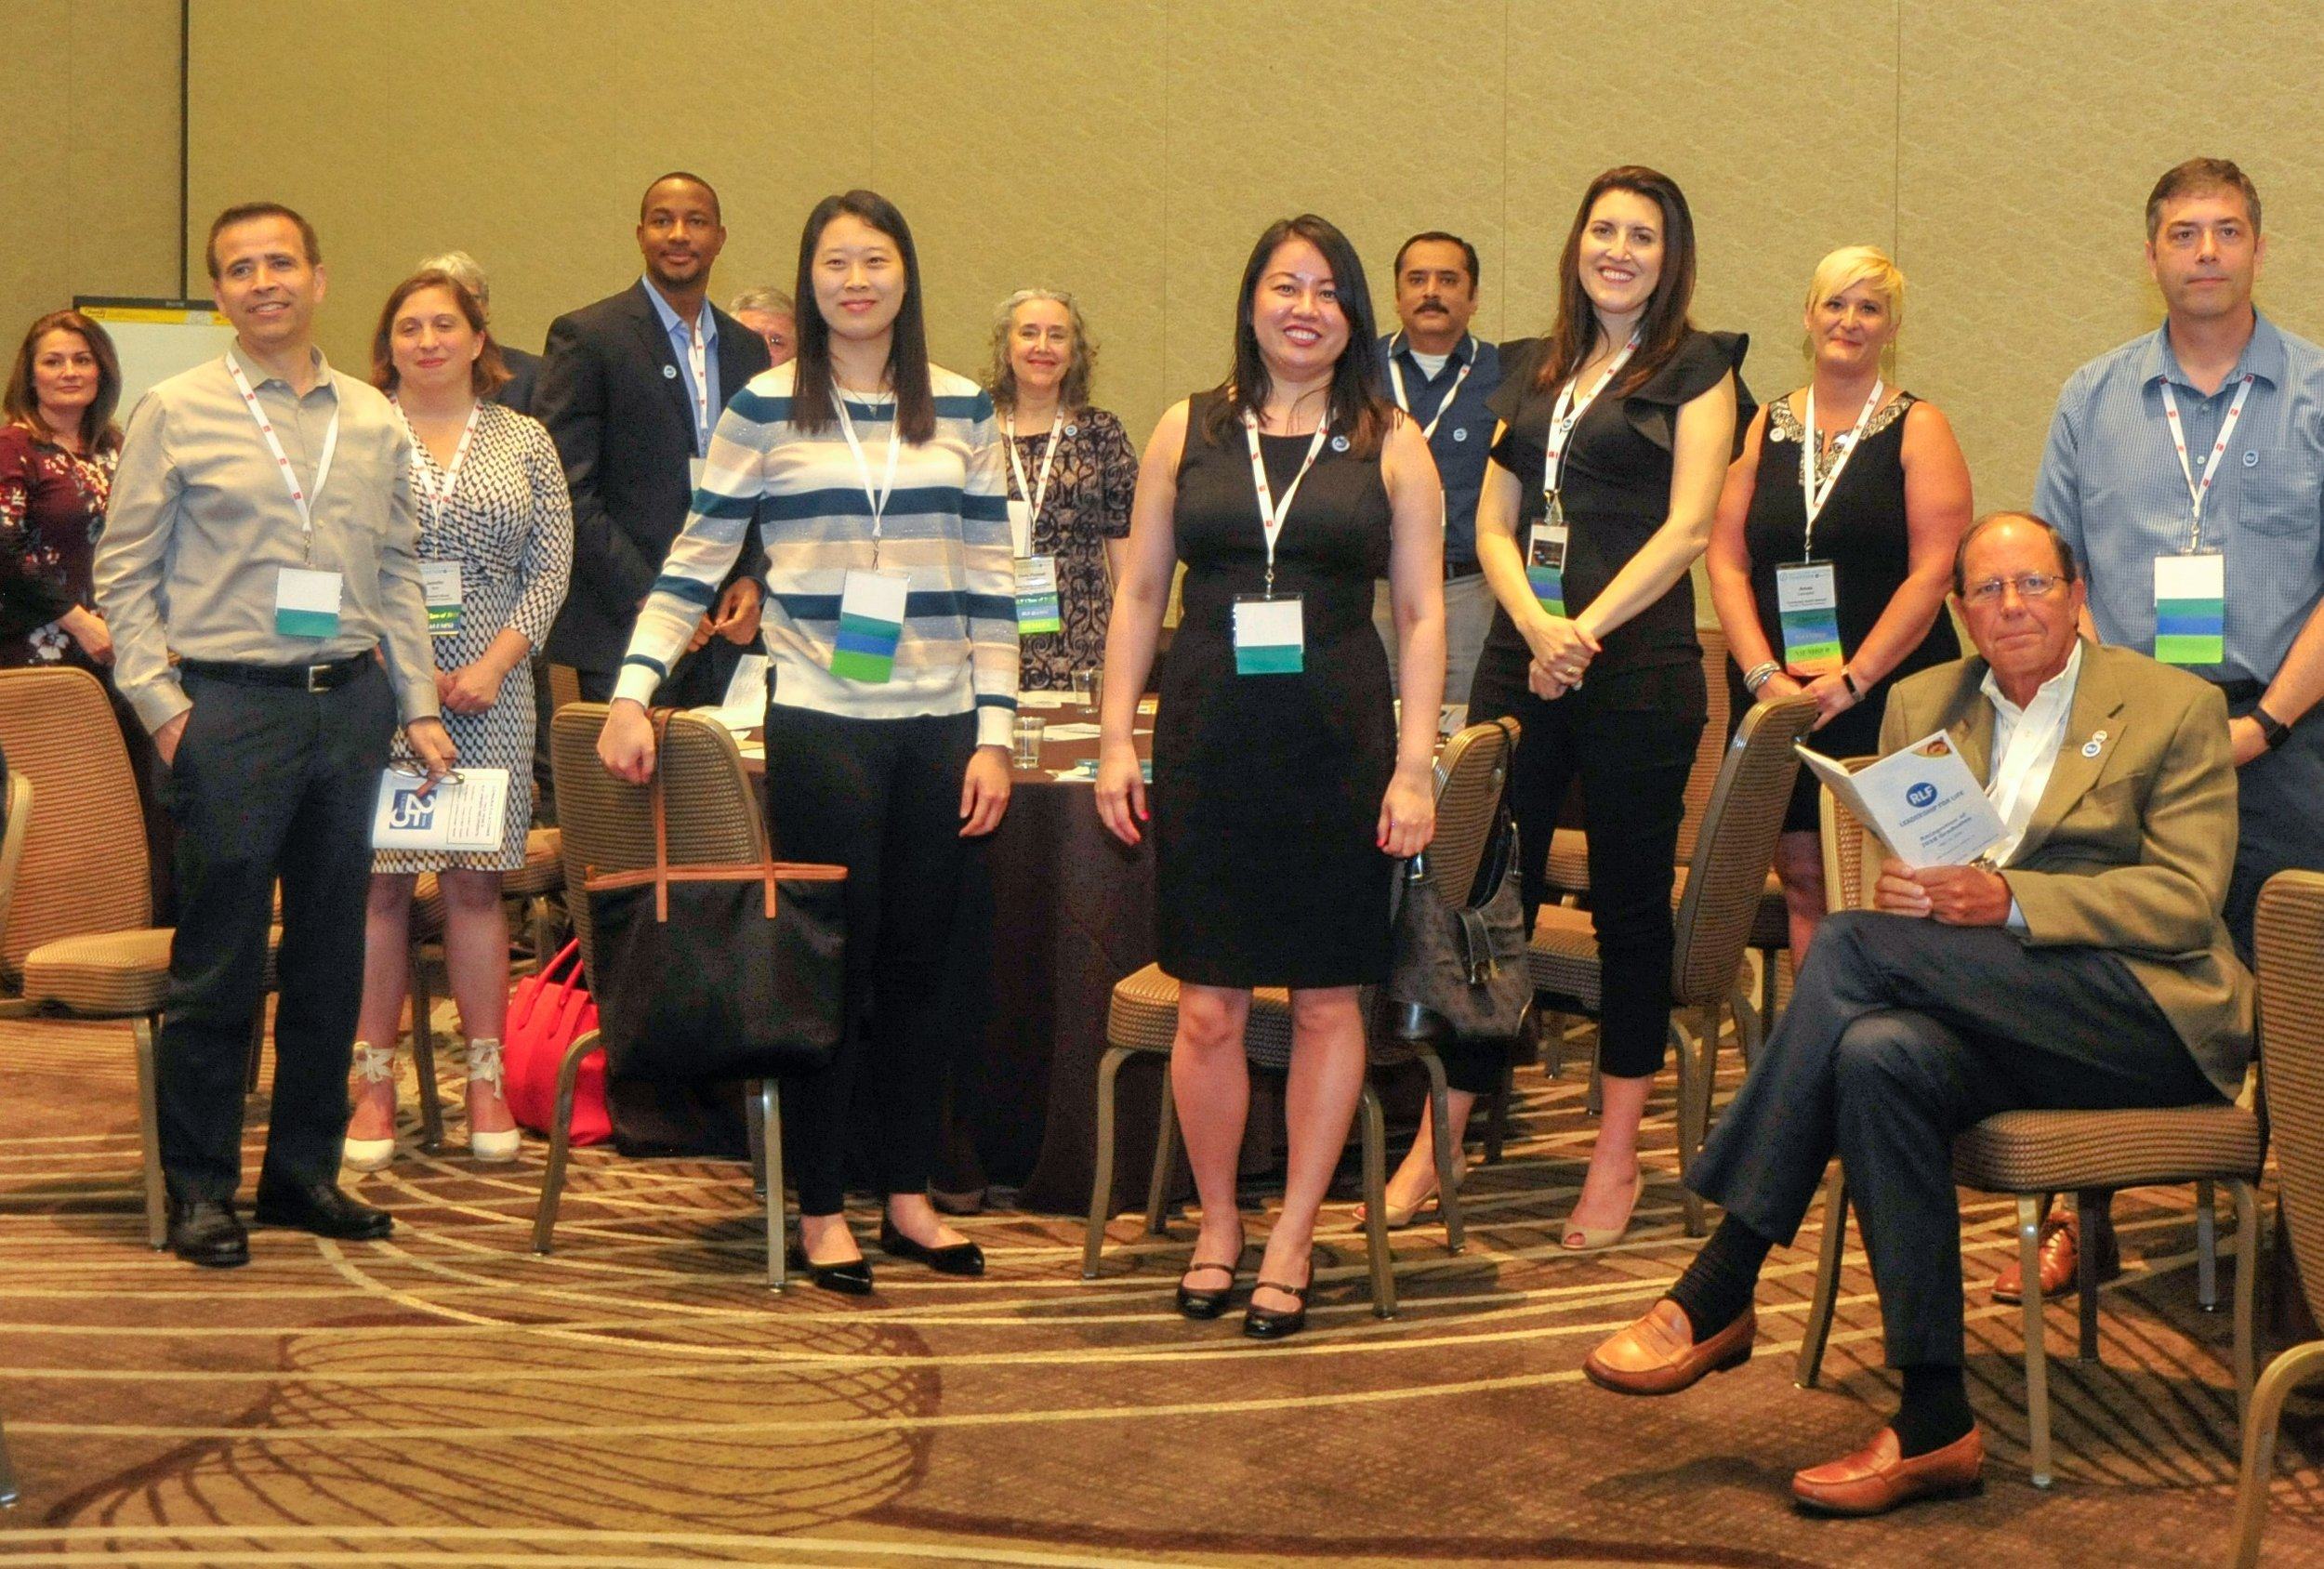 Grads of the 2018 Midwest RLF program were among the many RLF grads recognized during a special celebration on May 15, 2019 during SIM Connect Live in Orlando.